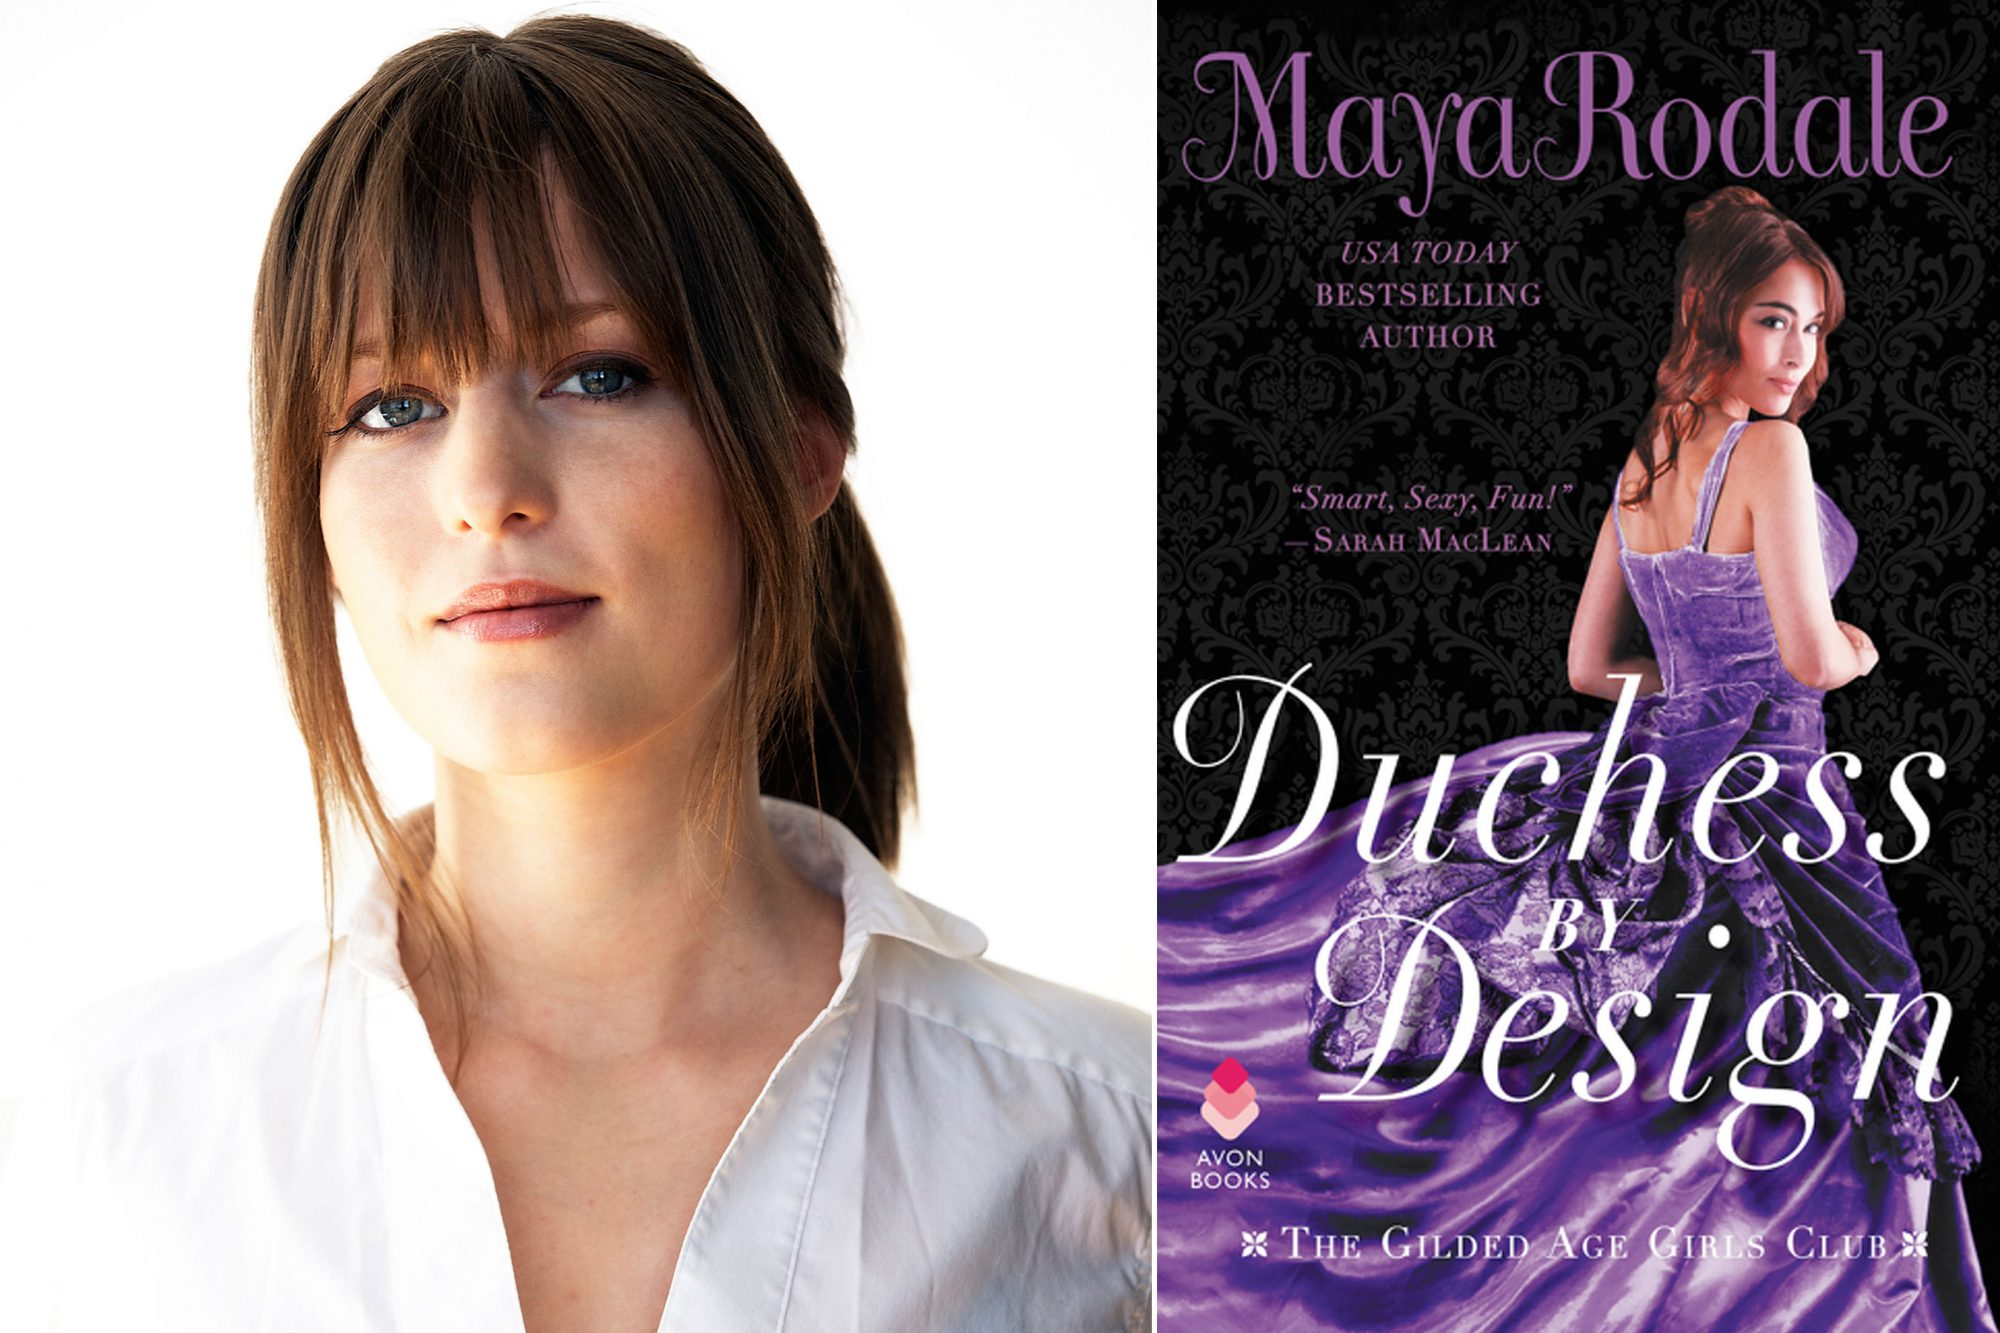 Maya Rodale Duchess By DesignCredit: Courtesy Avon Books